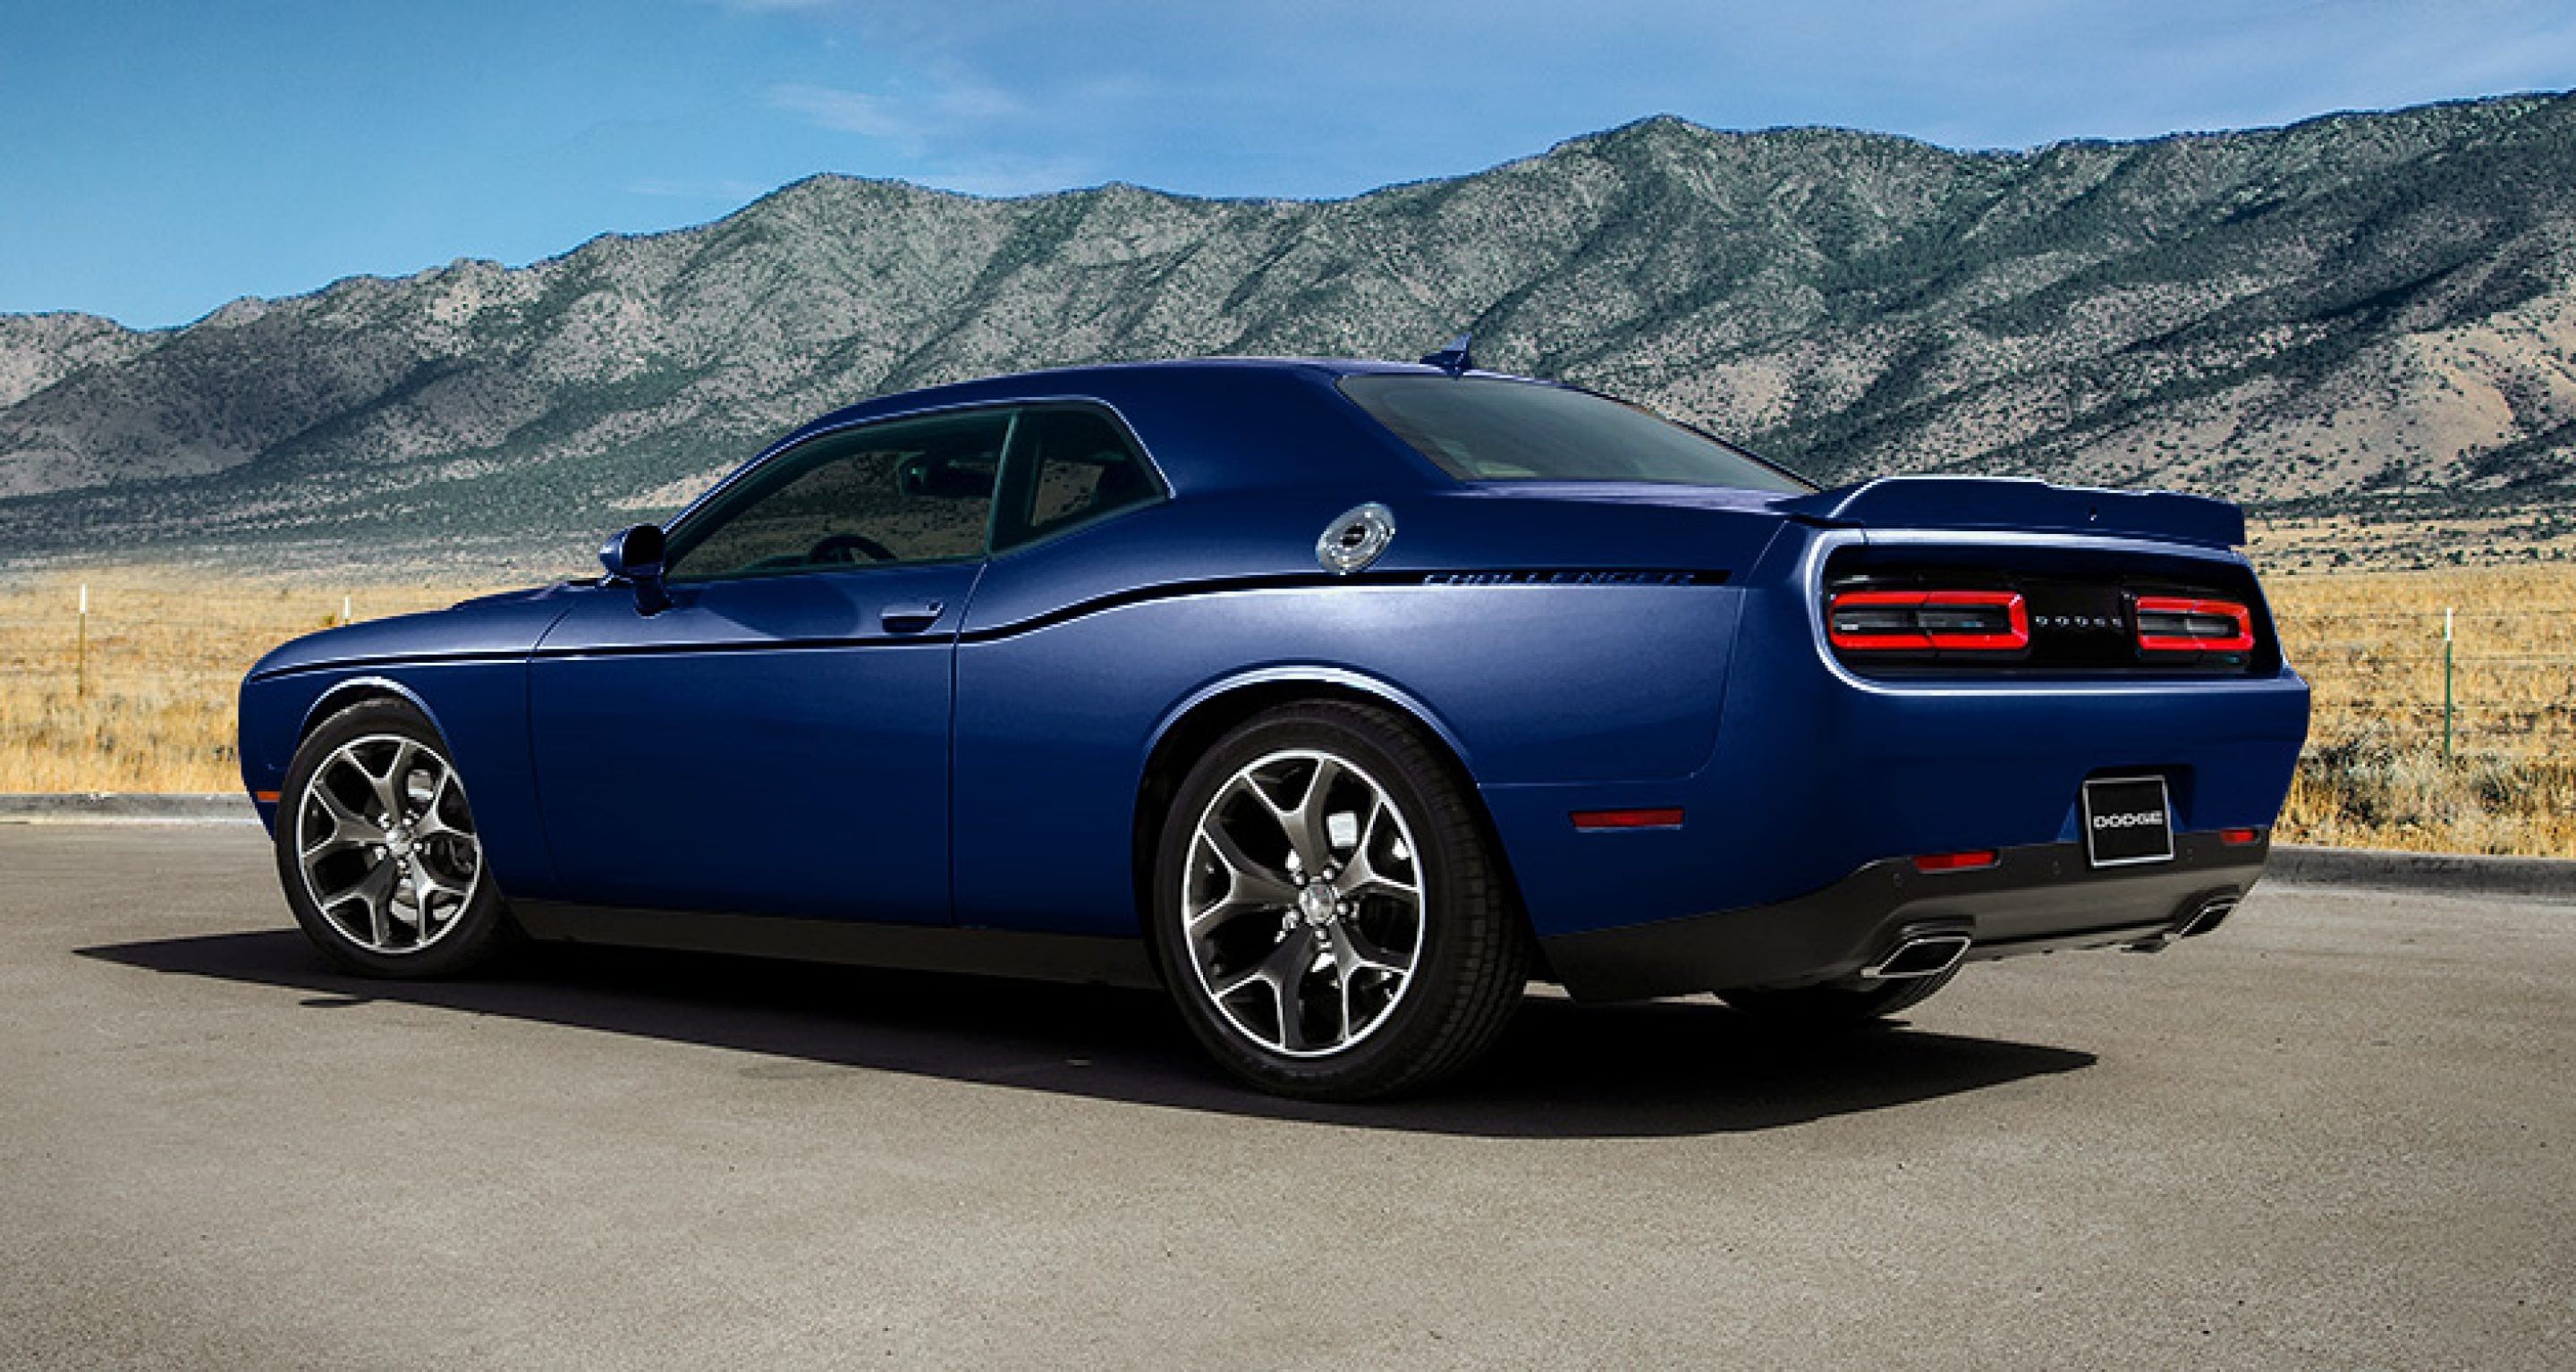 2017 Dodge Challenger Rear Exterior Blue